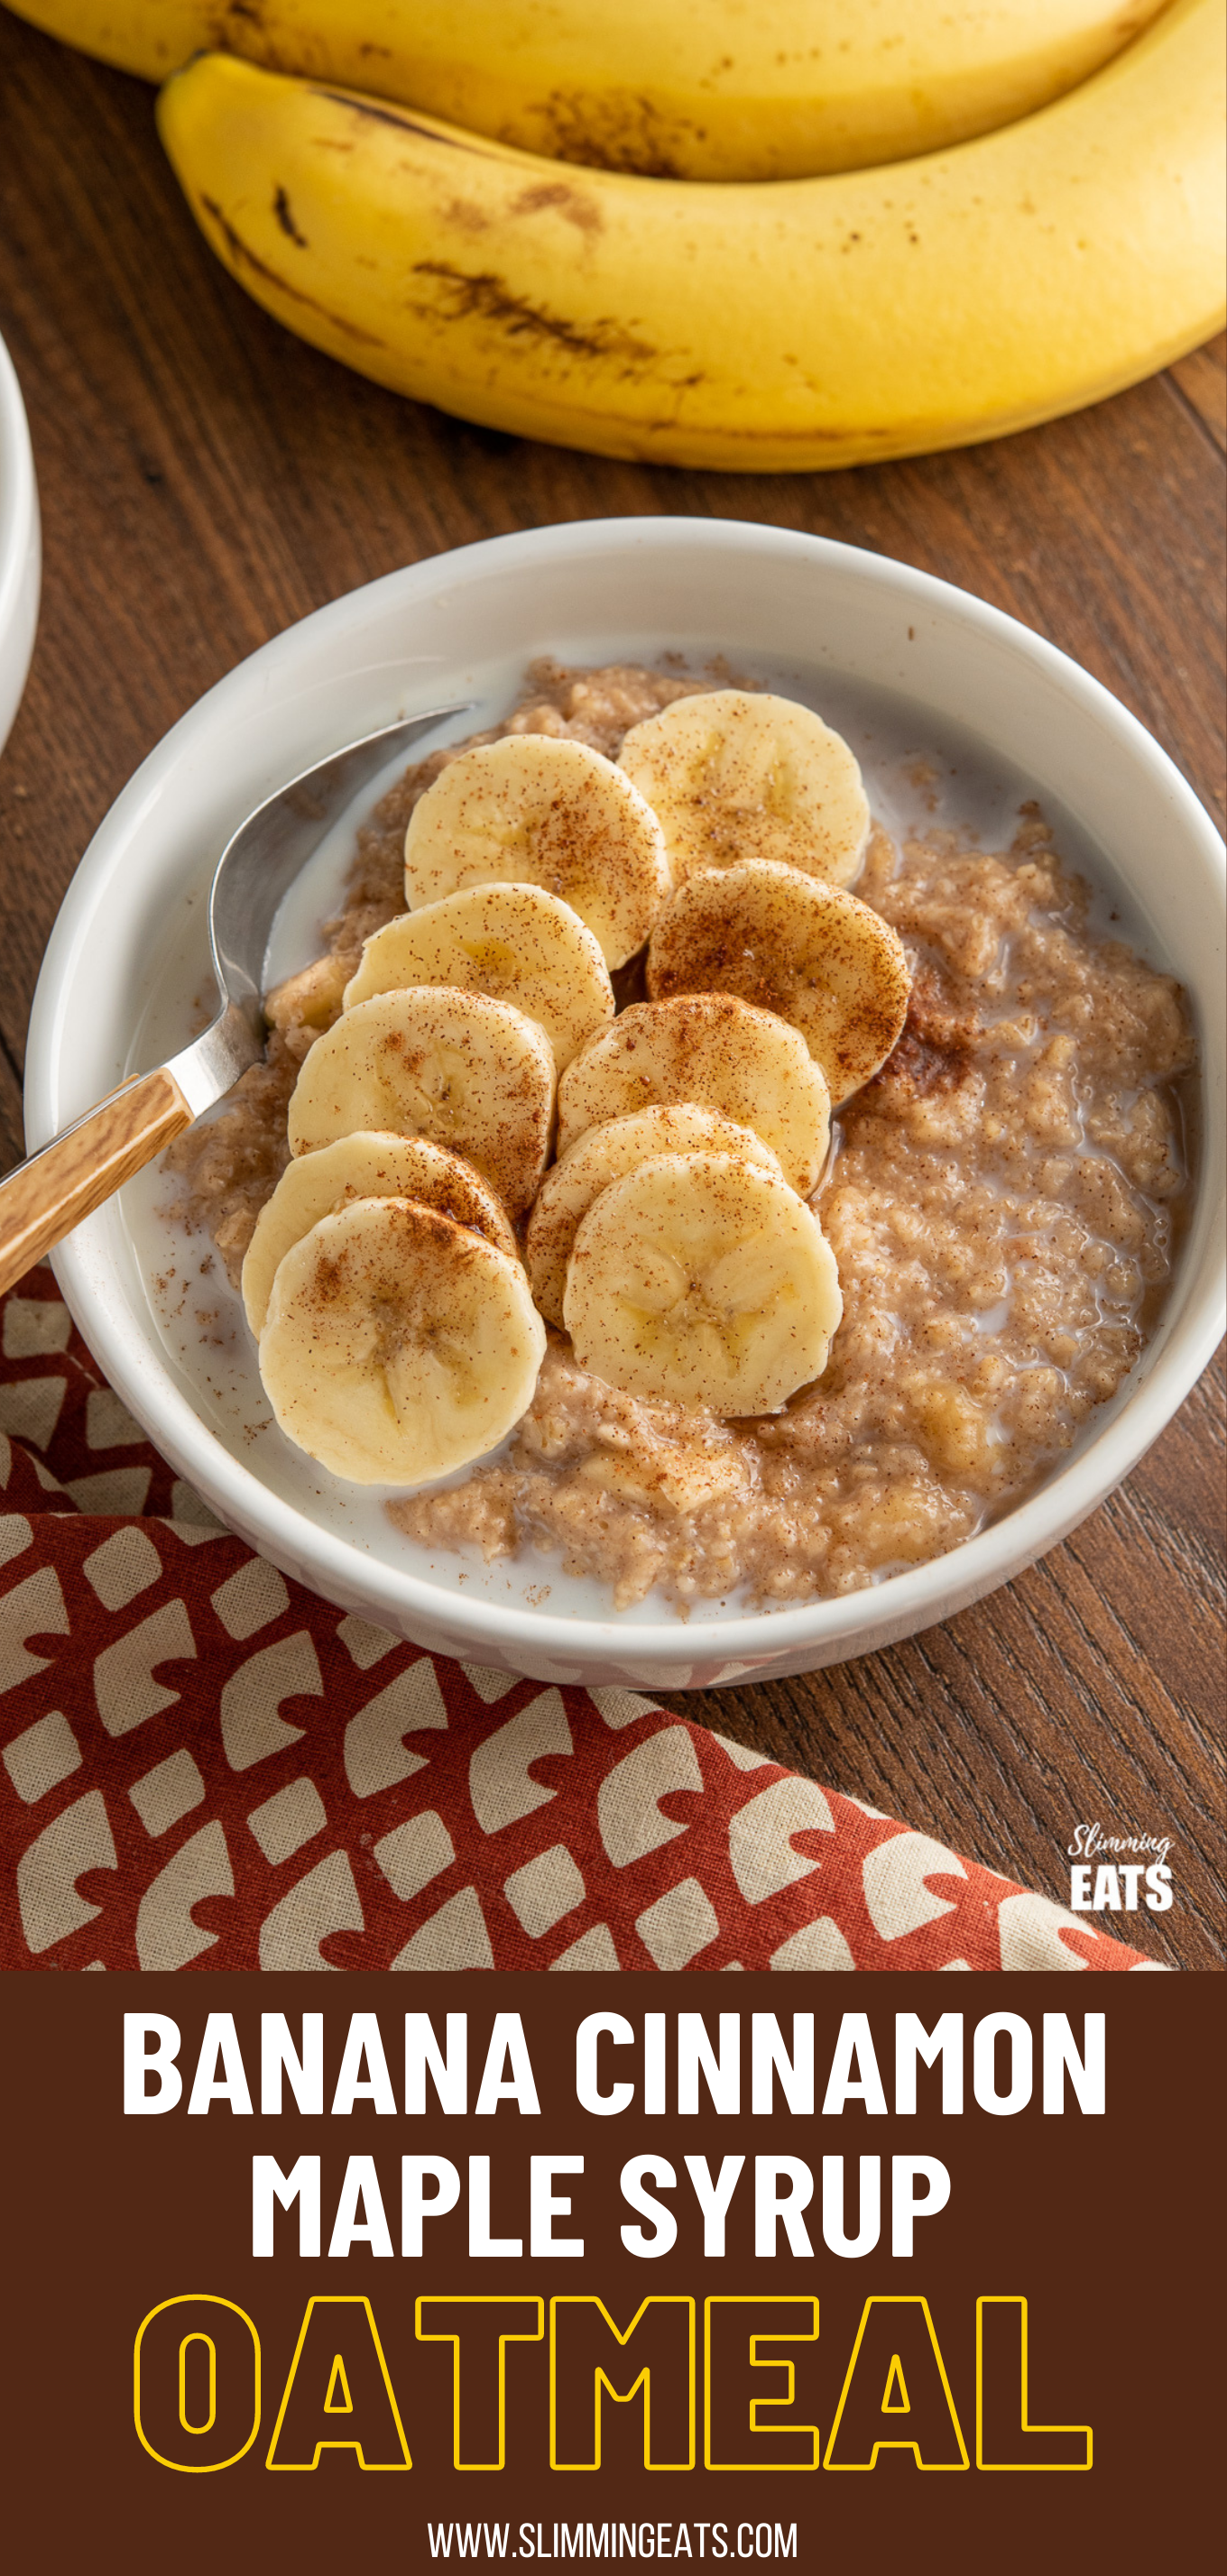 Oatmeal with Banana, Cinnamon and Maple Syrup in white bowl with spoon and bananas in background pin image